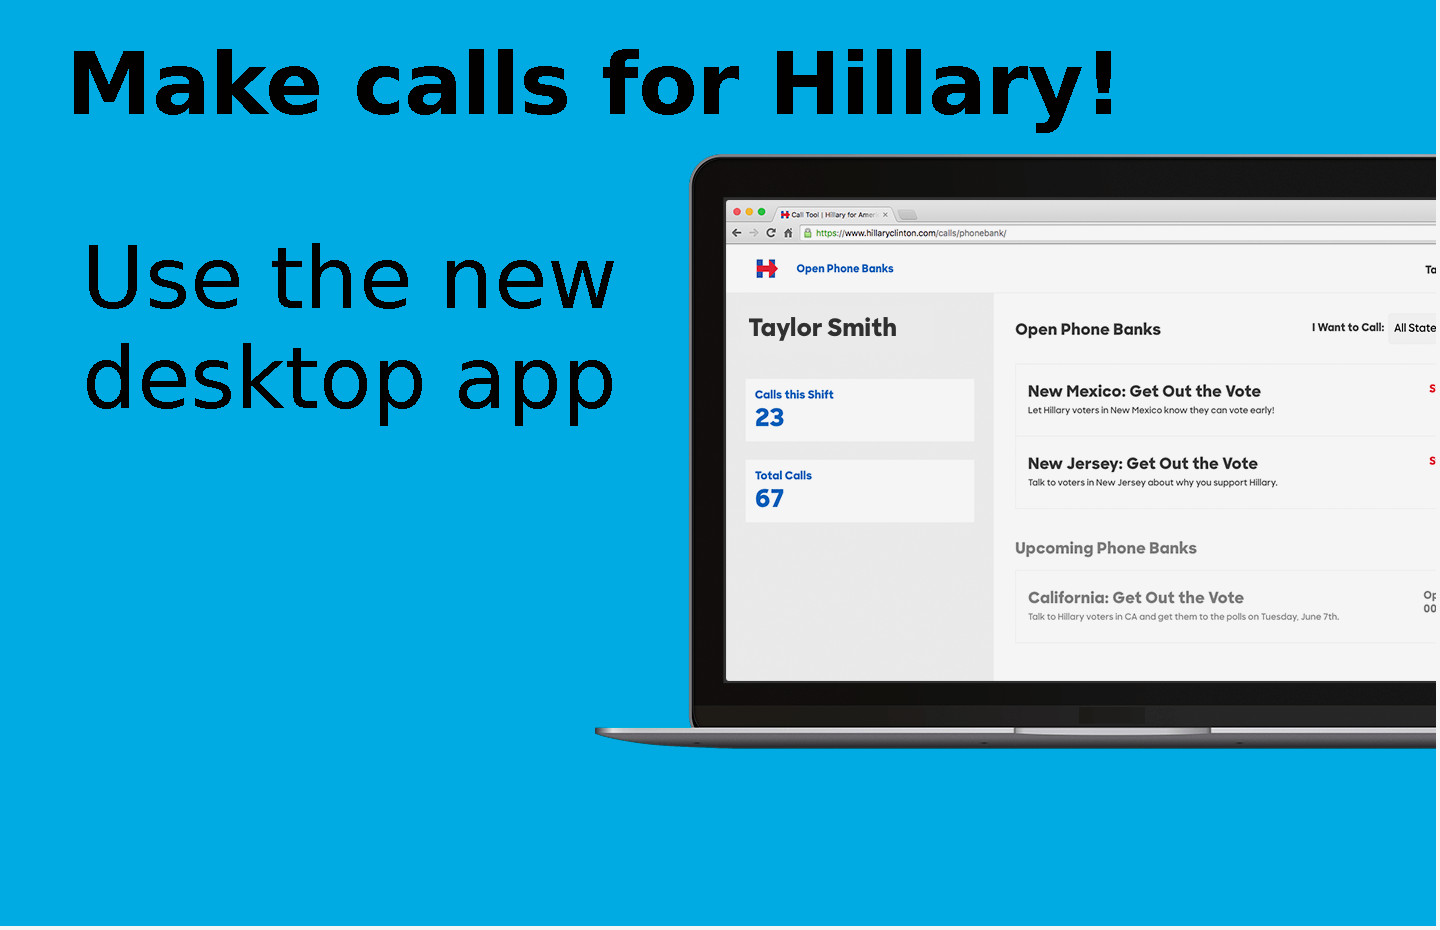 Make calls for Hillary!